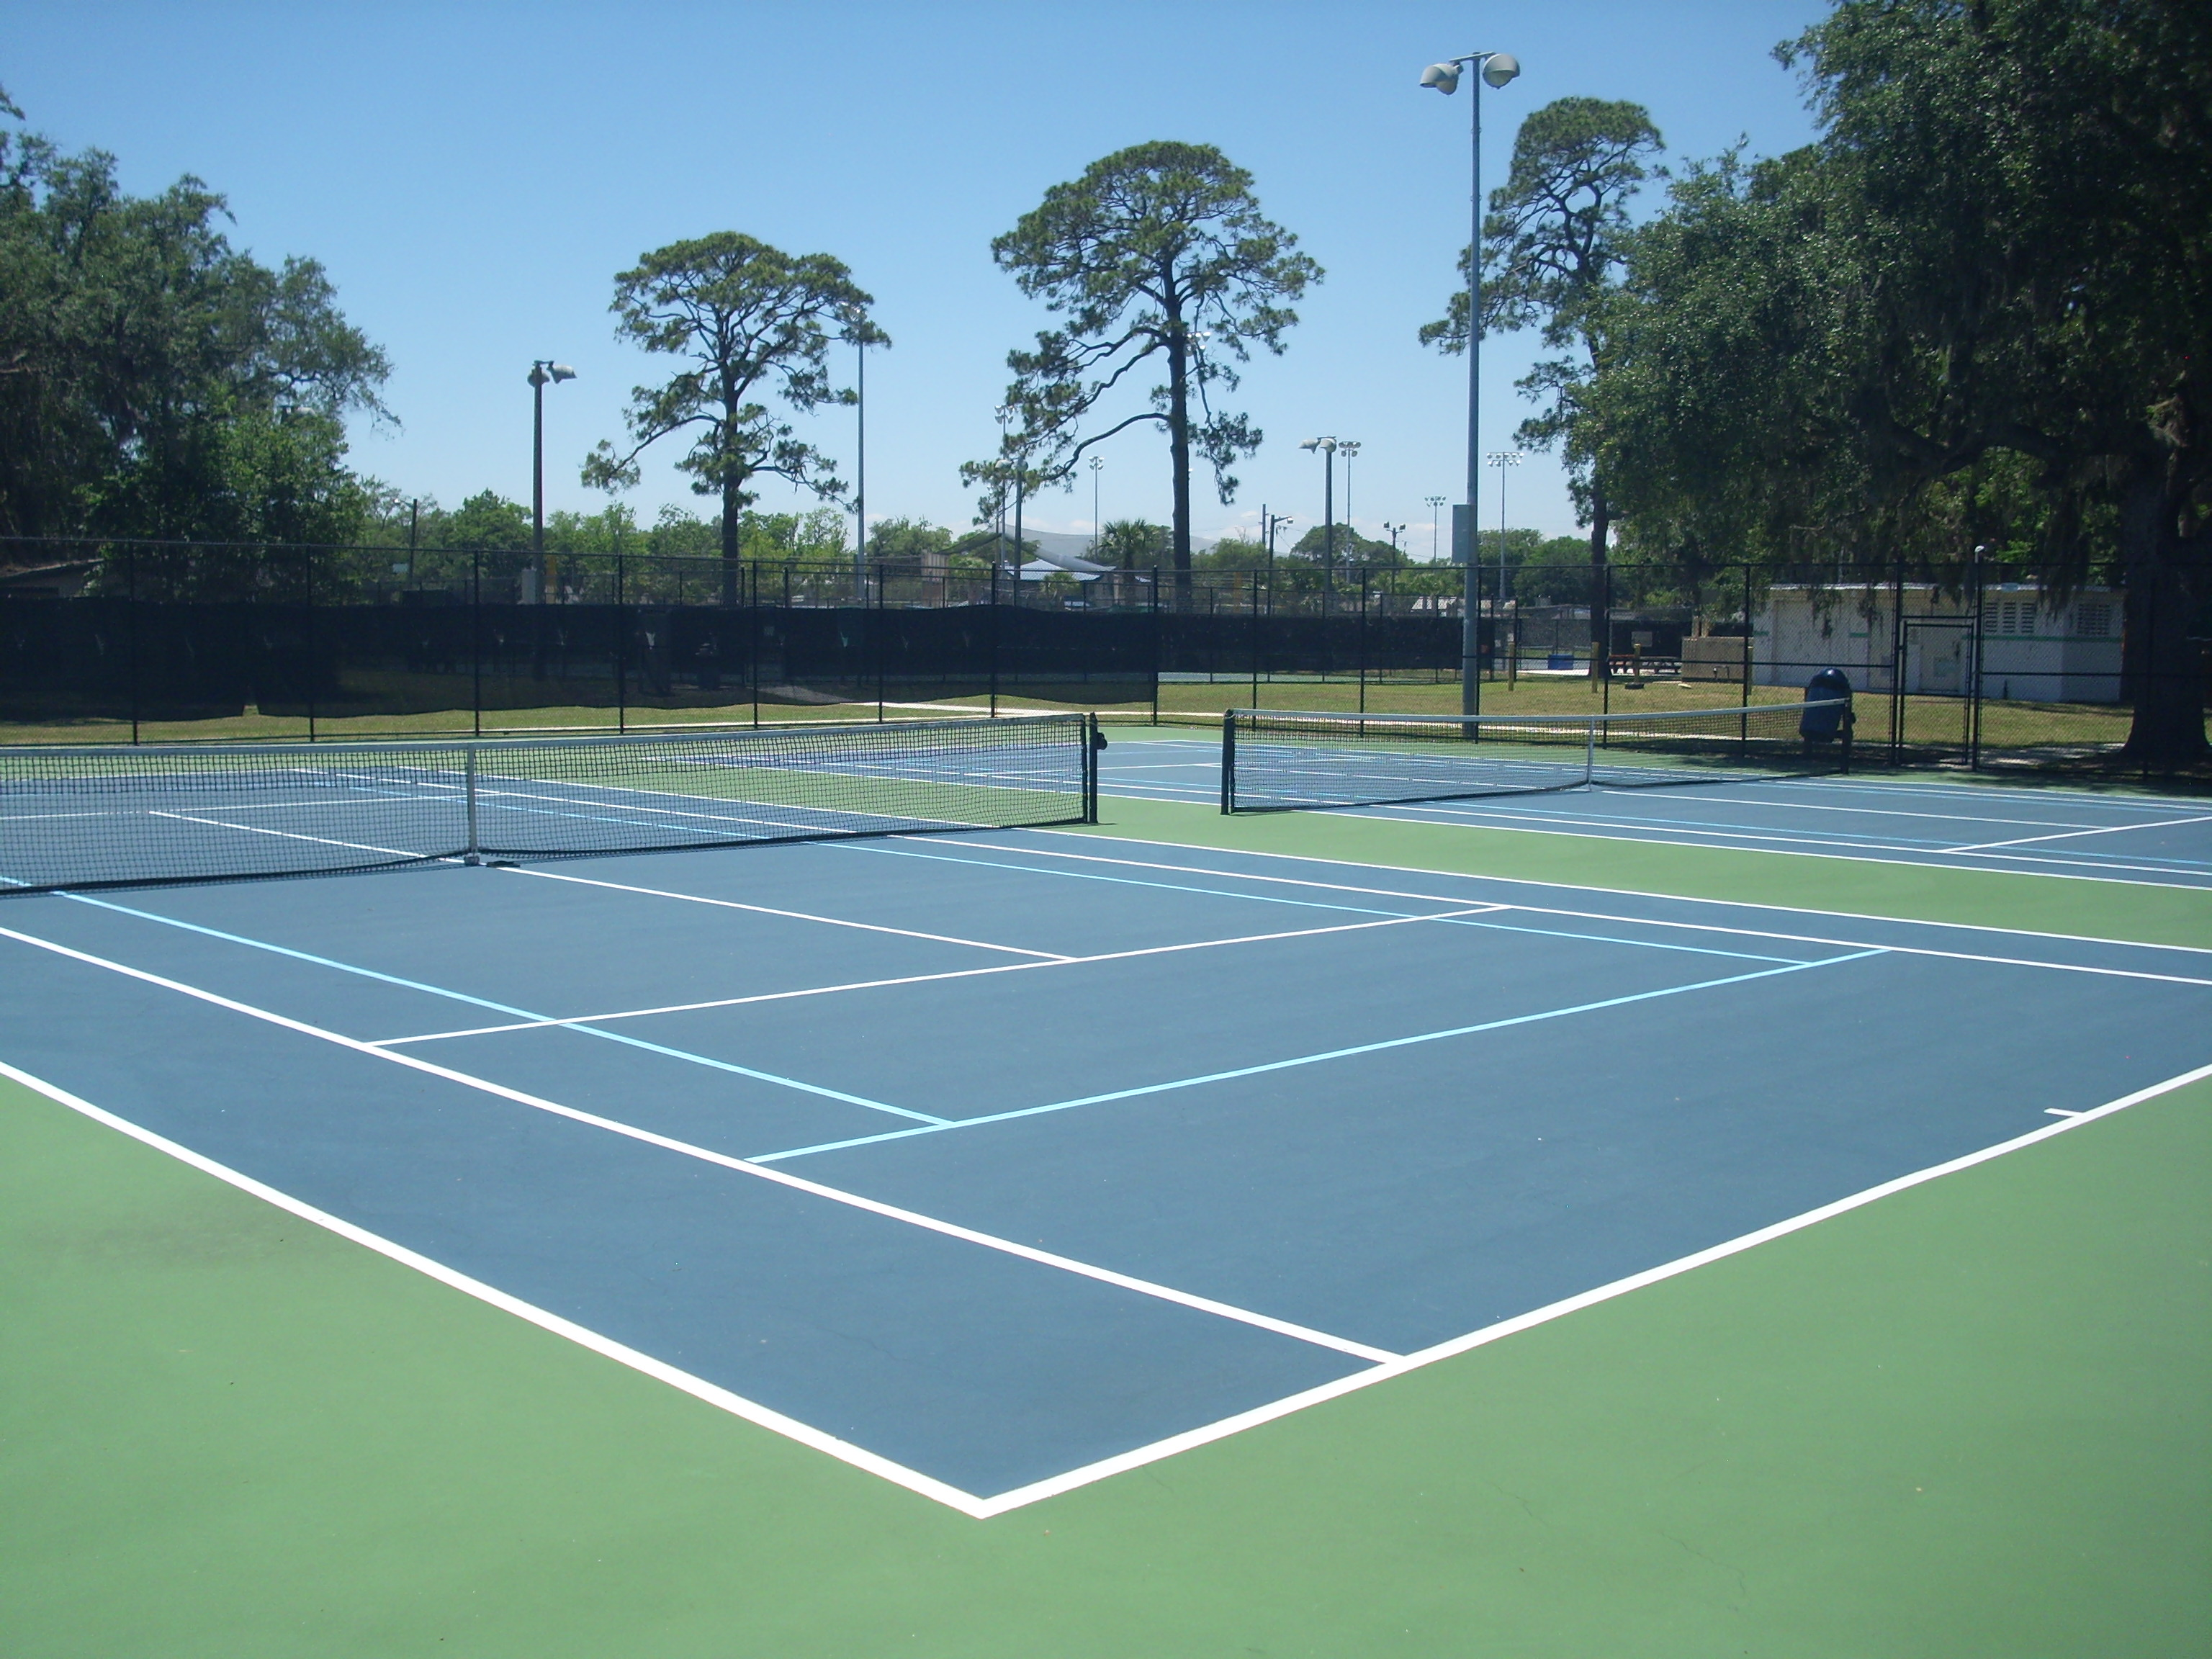 CP Tennis Courts 1 and 2 - May 2017.JPG